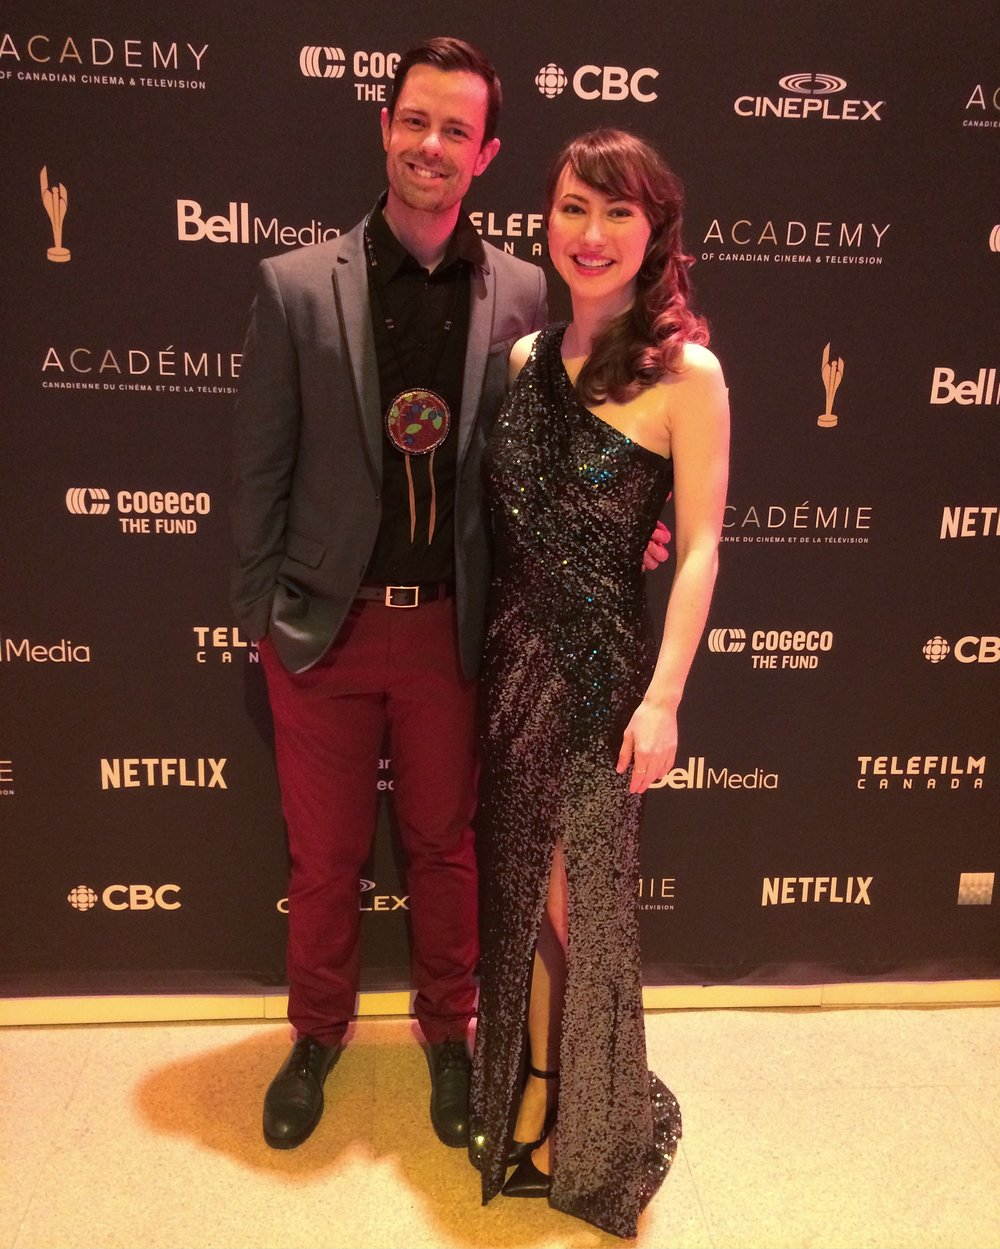 Adam Garnet Jones and Sarah Kolasky attend the Canadian Screen Awards""